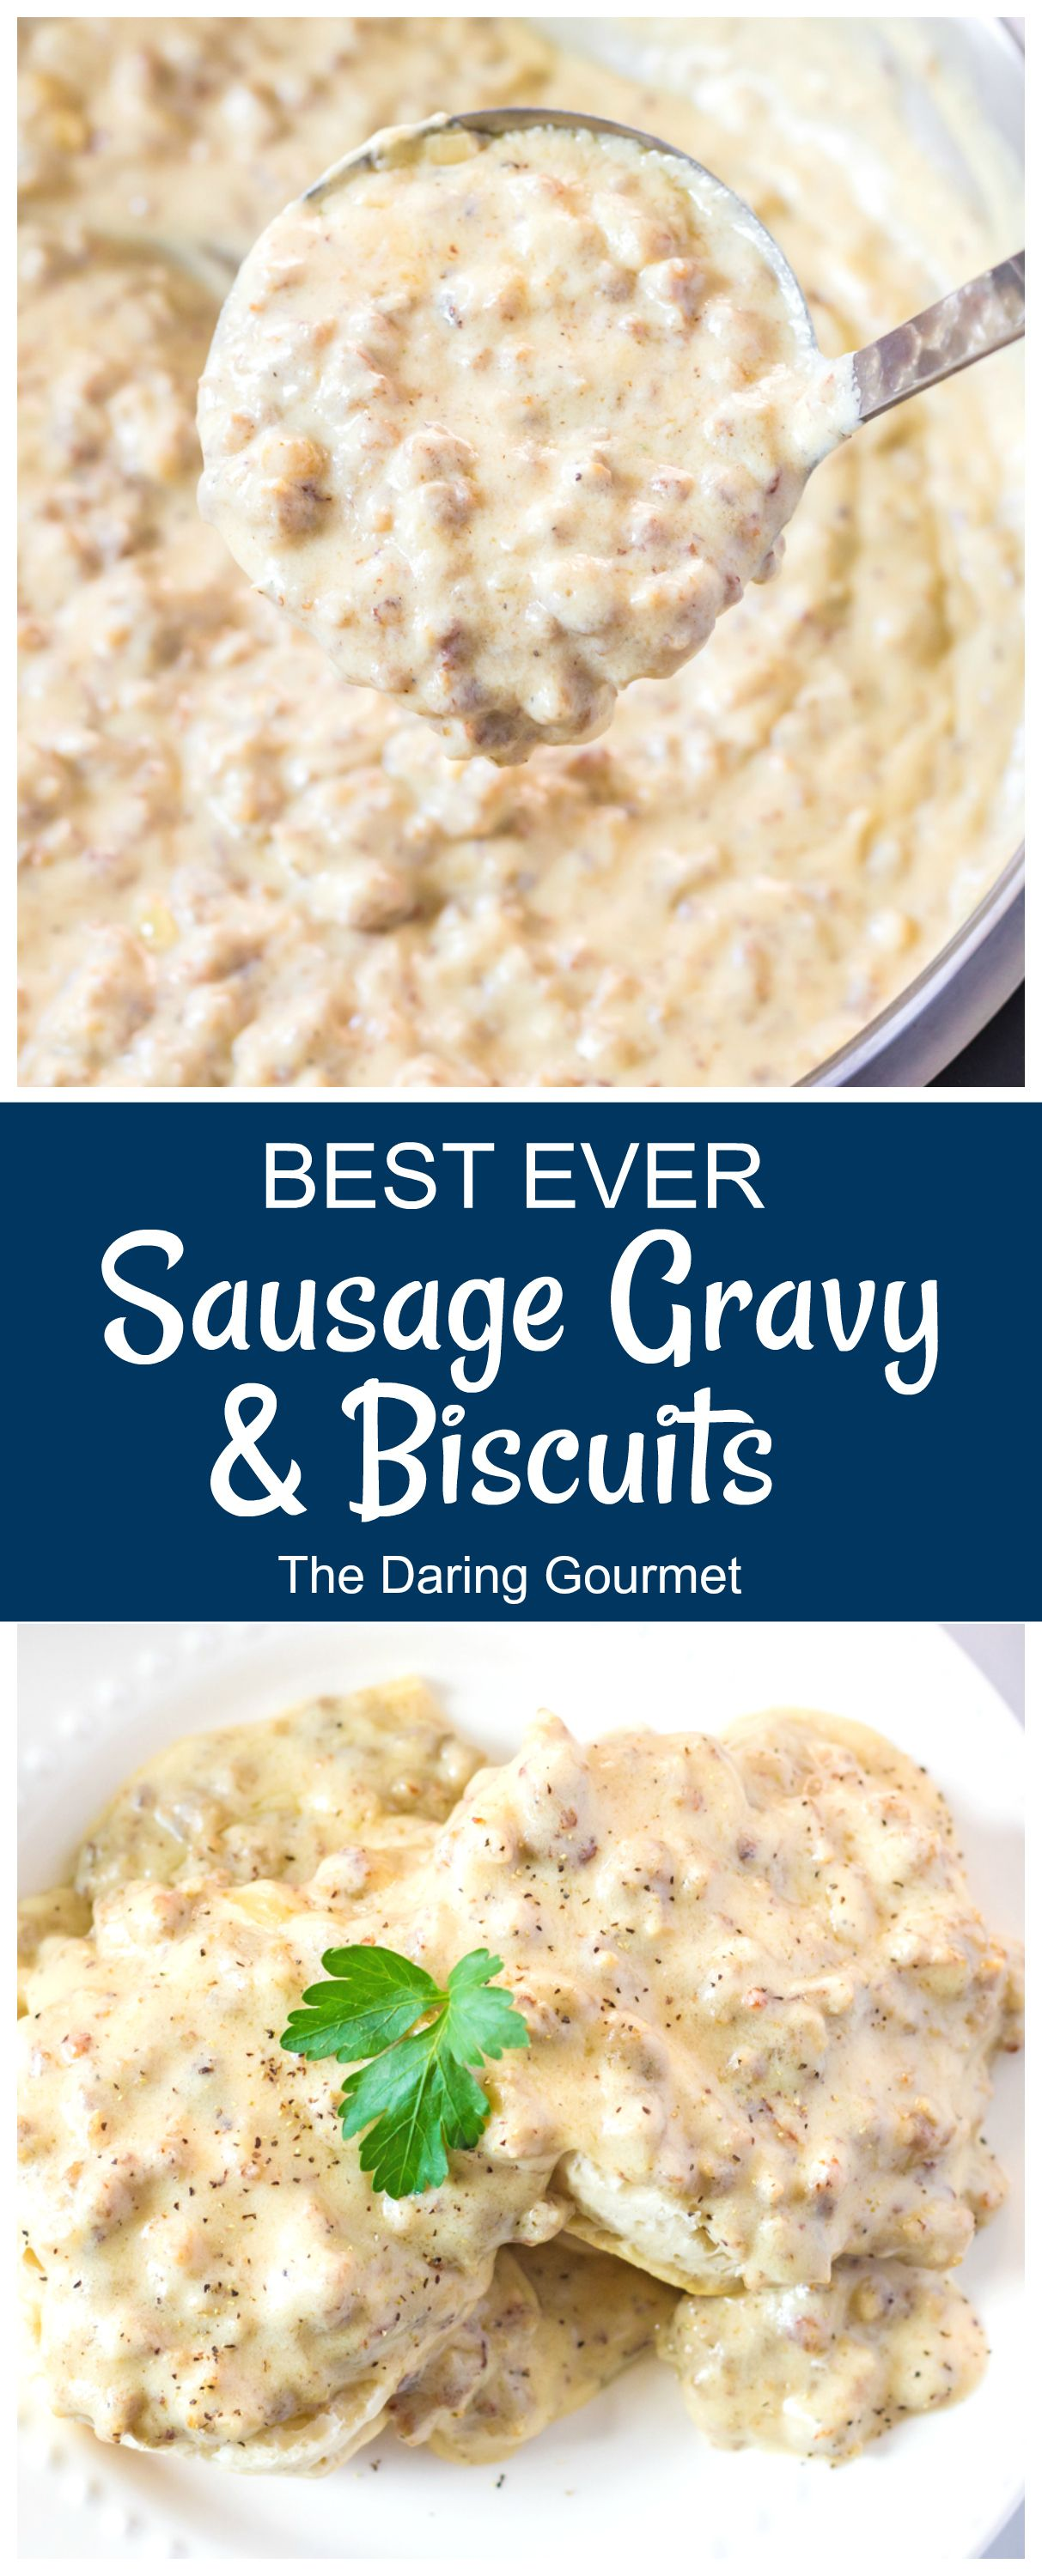 Sausage Gravy And Biscuits Recipe In 2020 Sausage Gravy Sausage Gravy And Biscuits Recipes